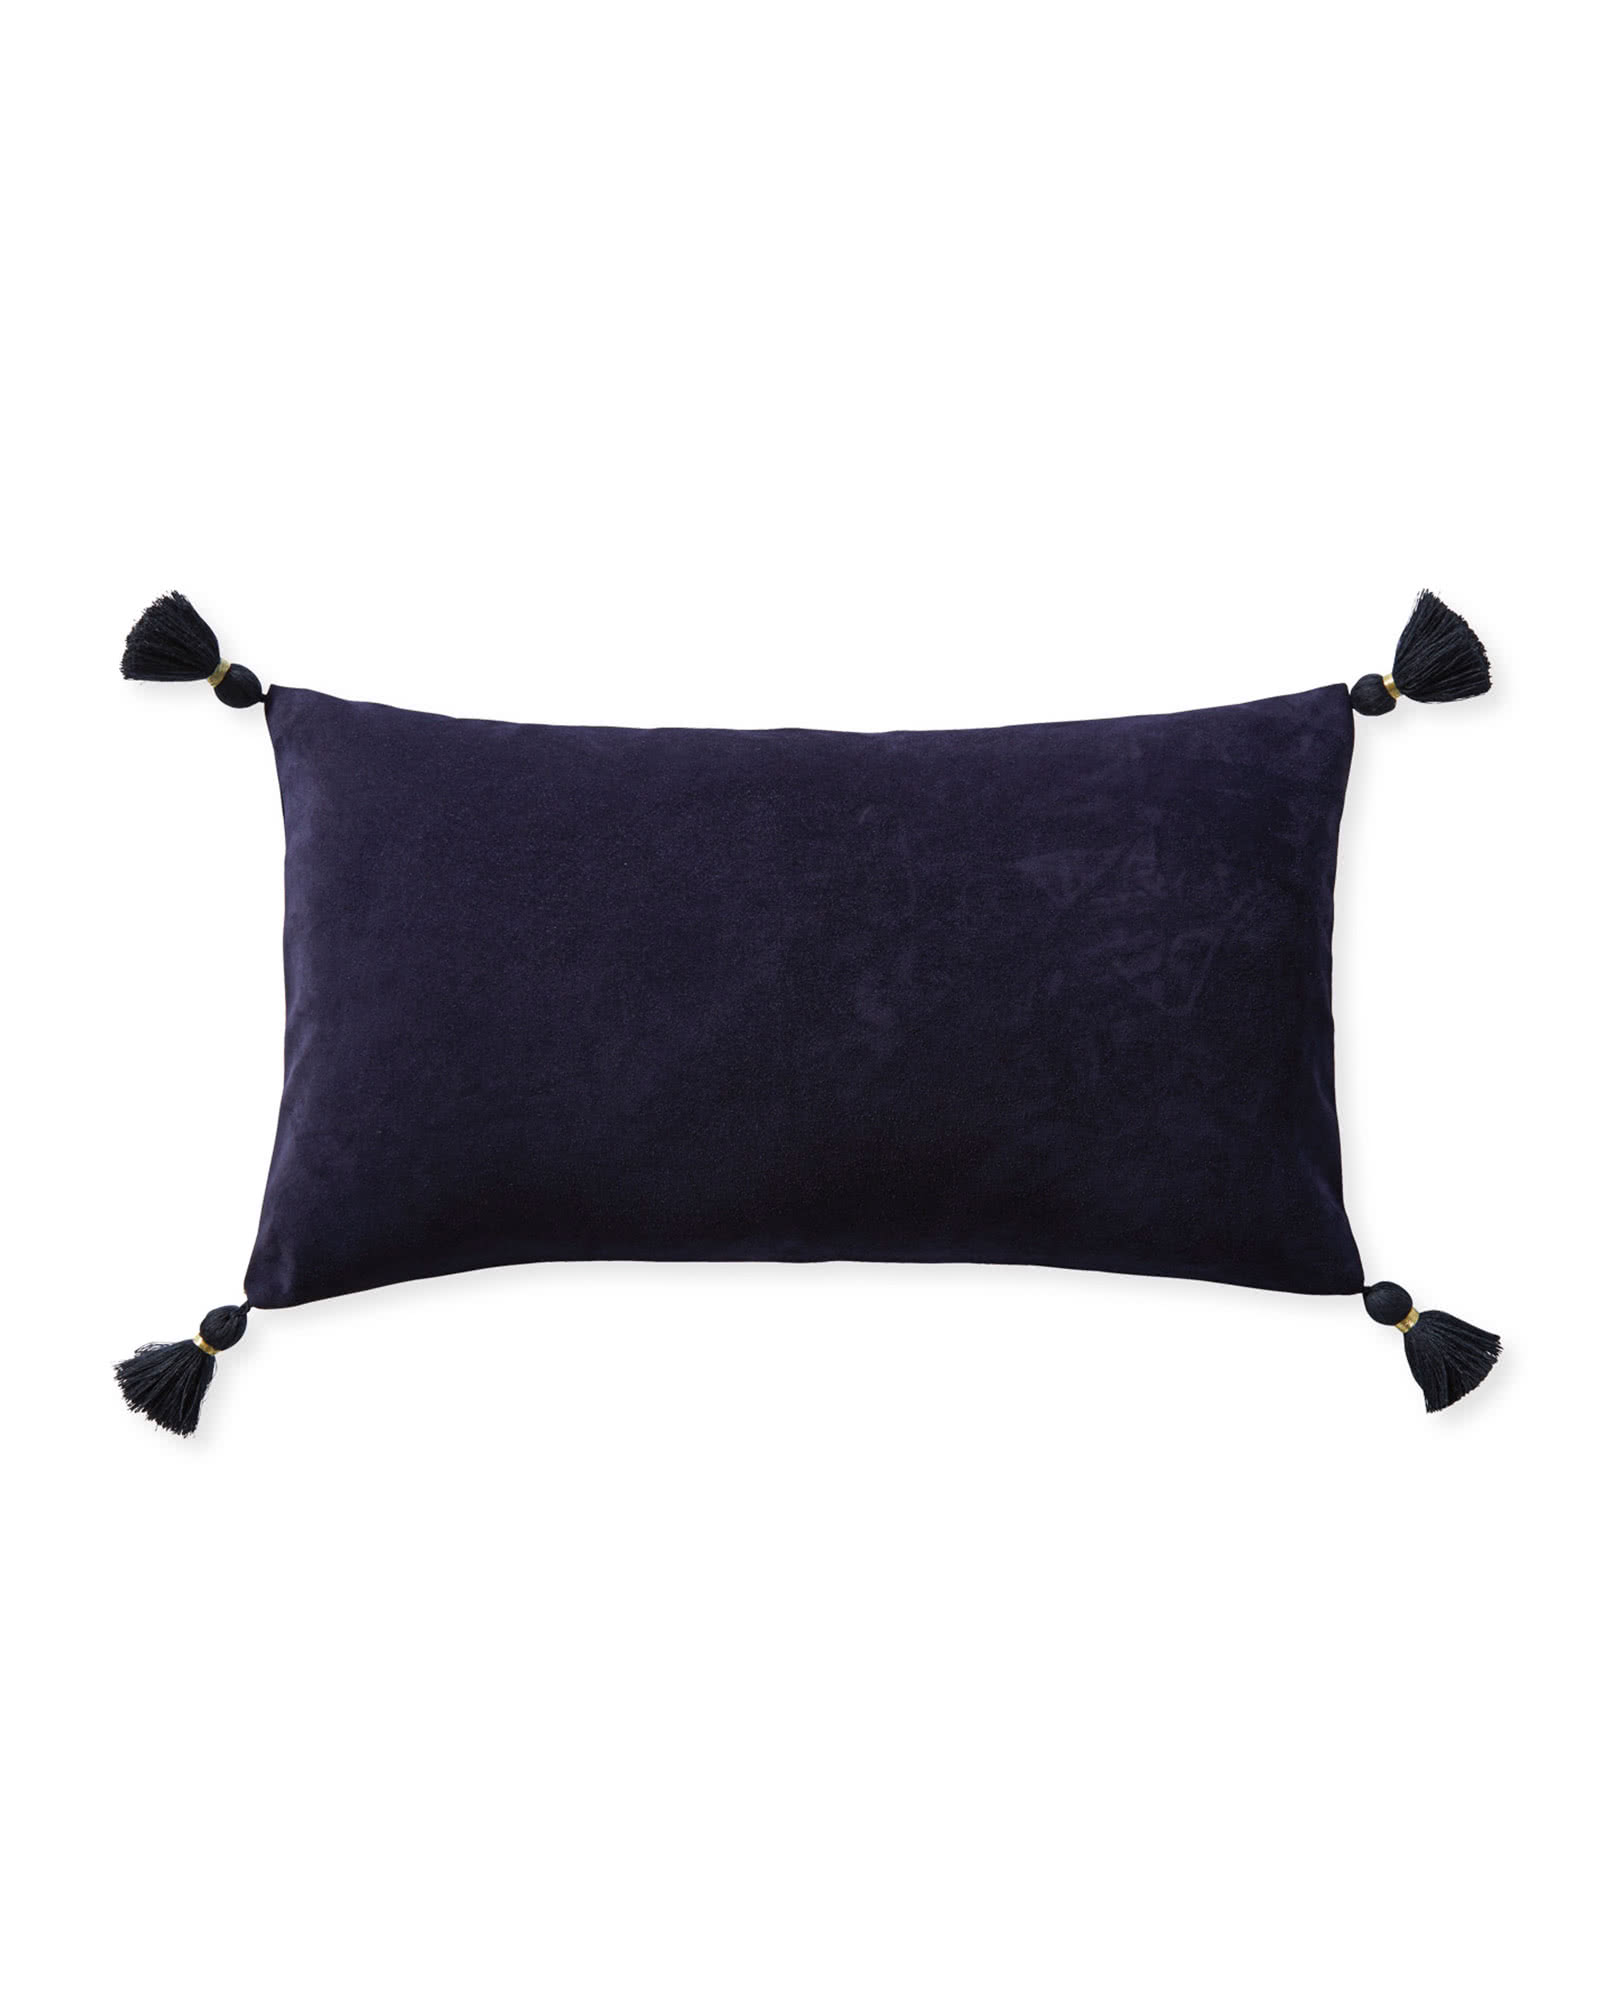 Suede Eva Pillow Cover, Navy